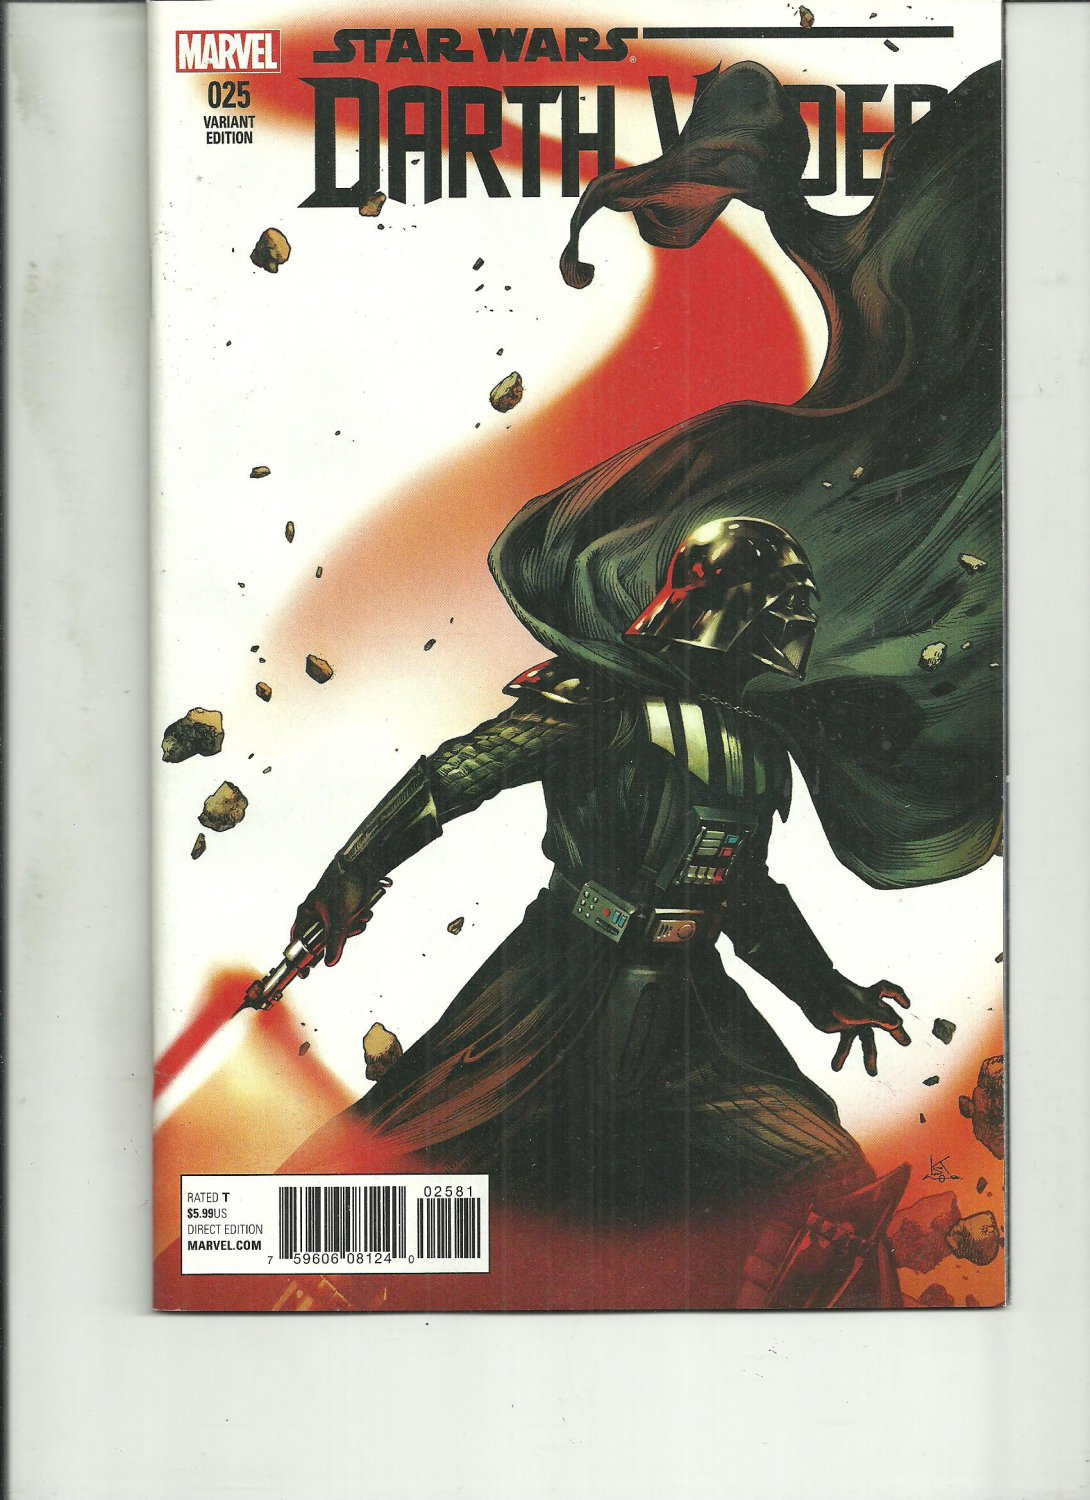 DARTH VADER #25 VARIANT COVER MARVEL COMICS 2016